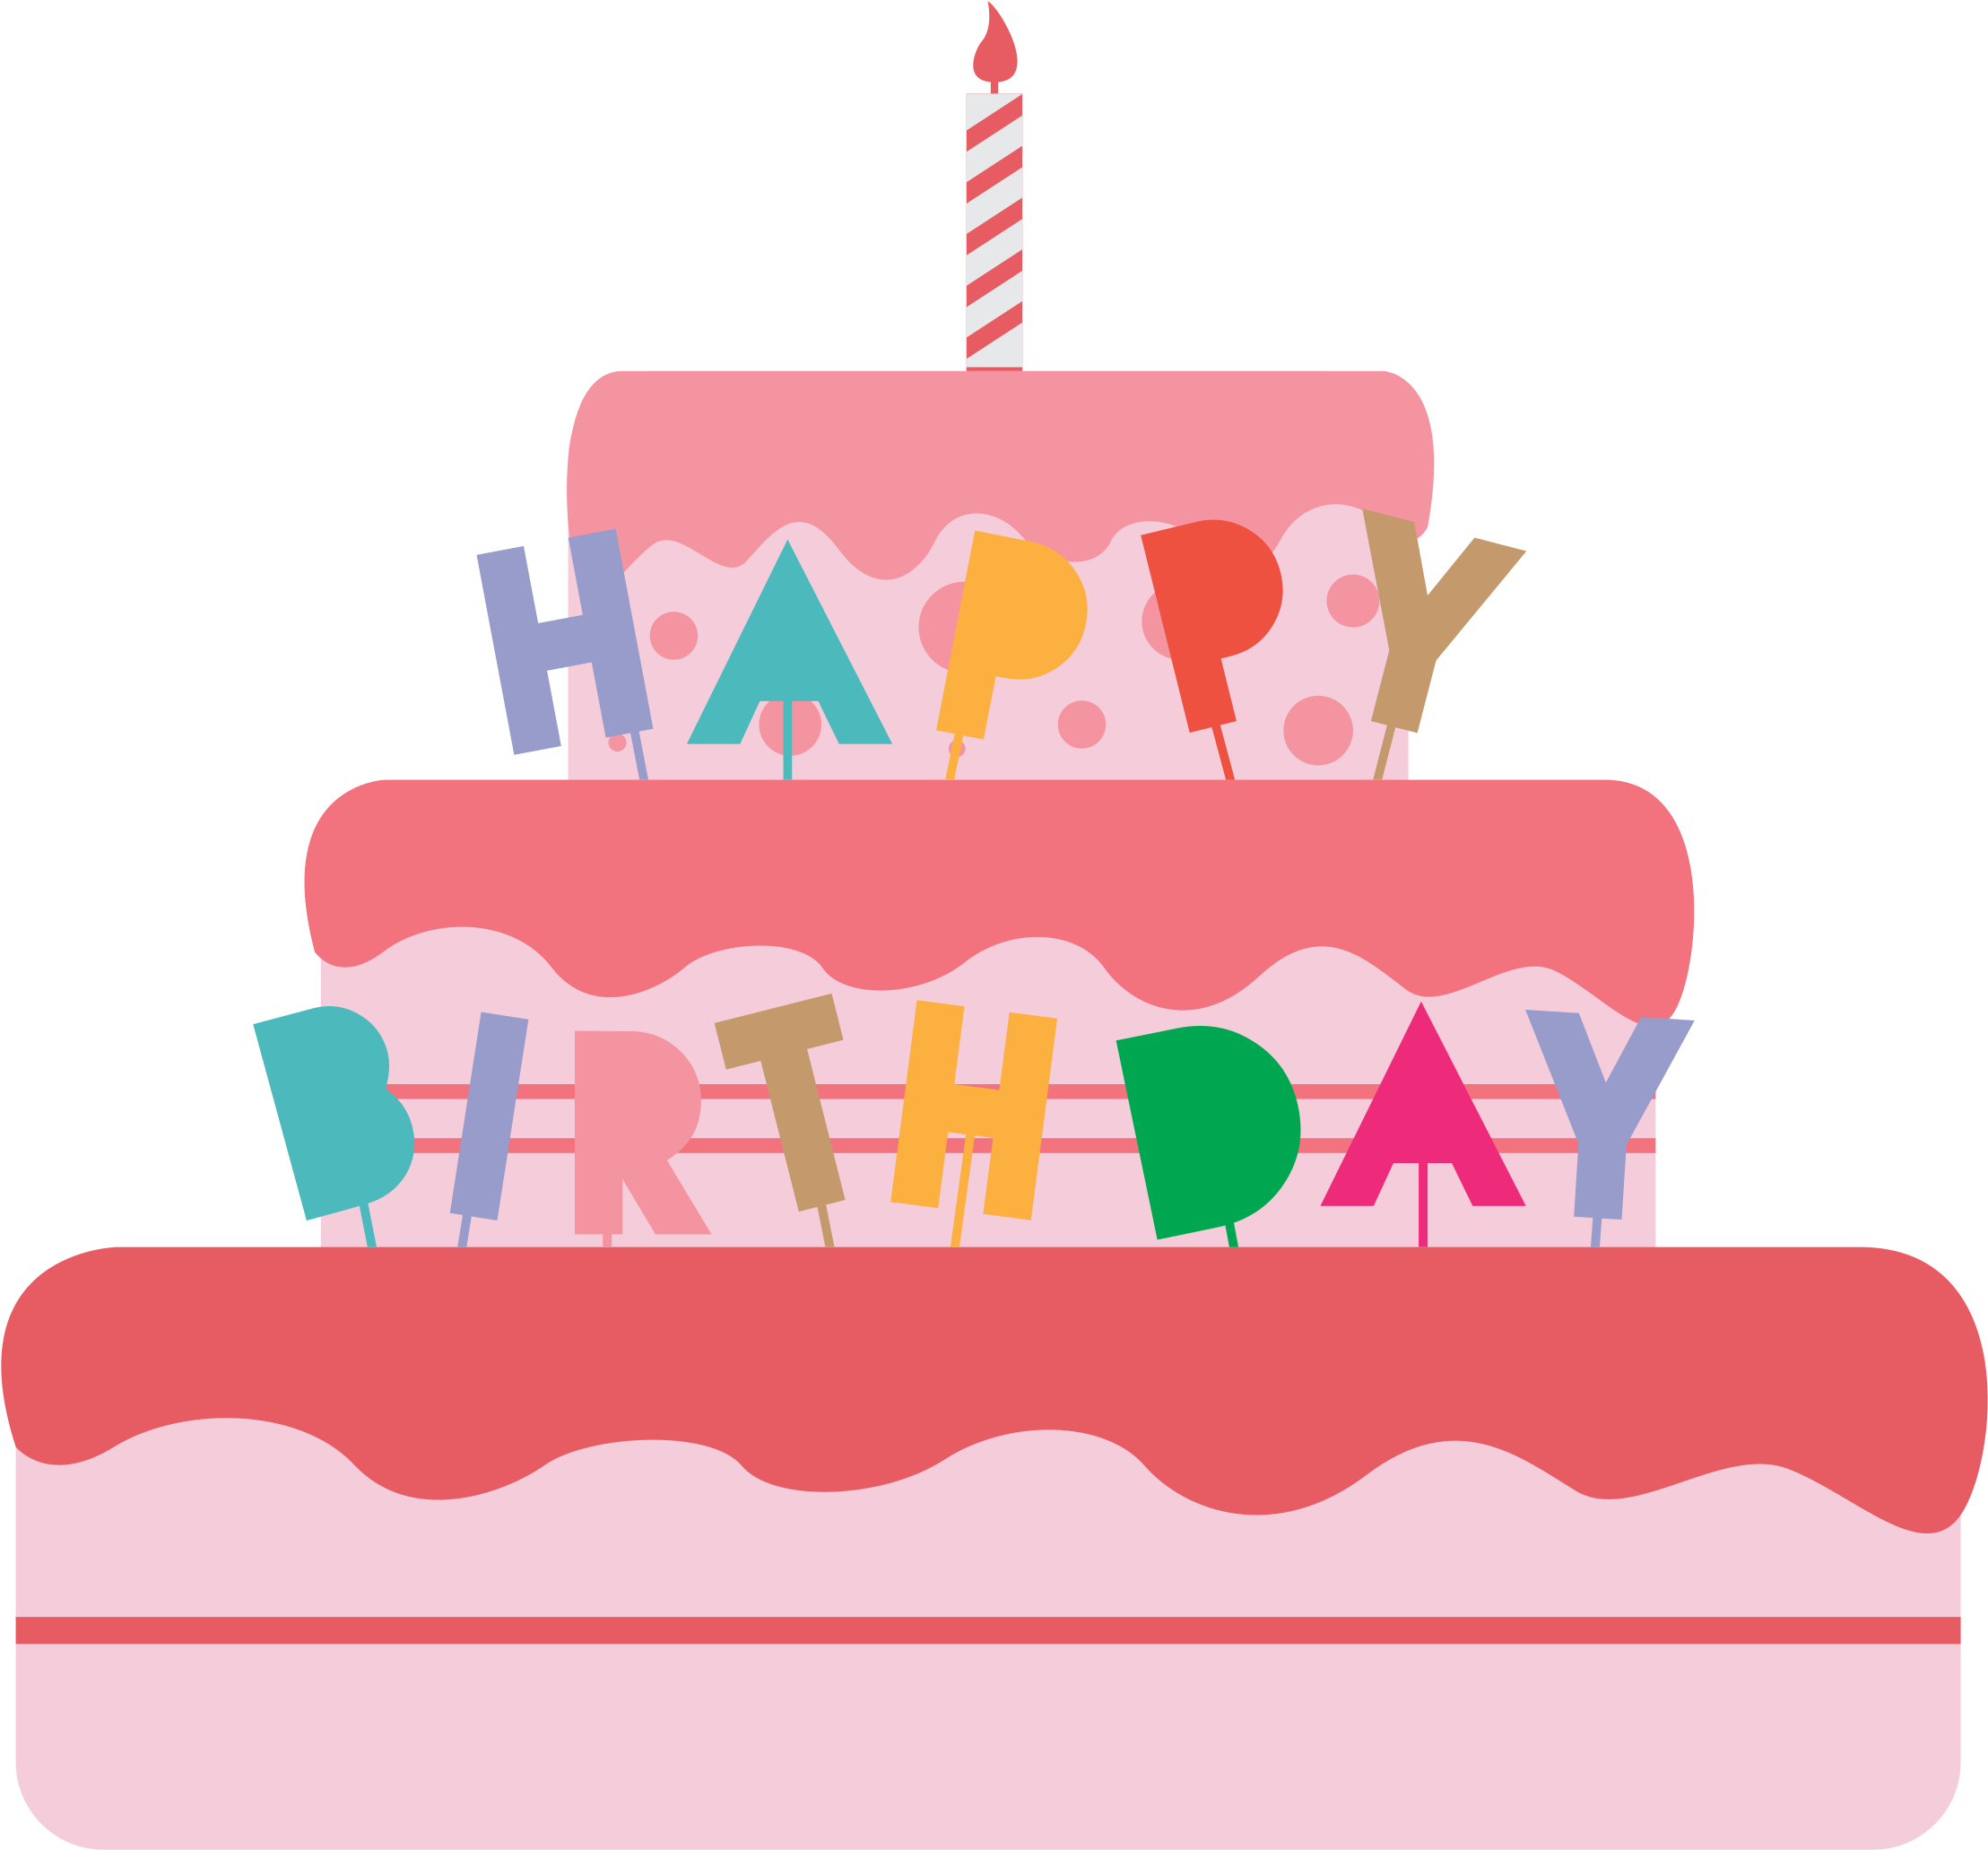 Wondrous Big Image Birthday Cake Vector Png Clipart Full Size Clipart Personalised Birthday Cards Veneteletsinfo